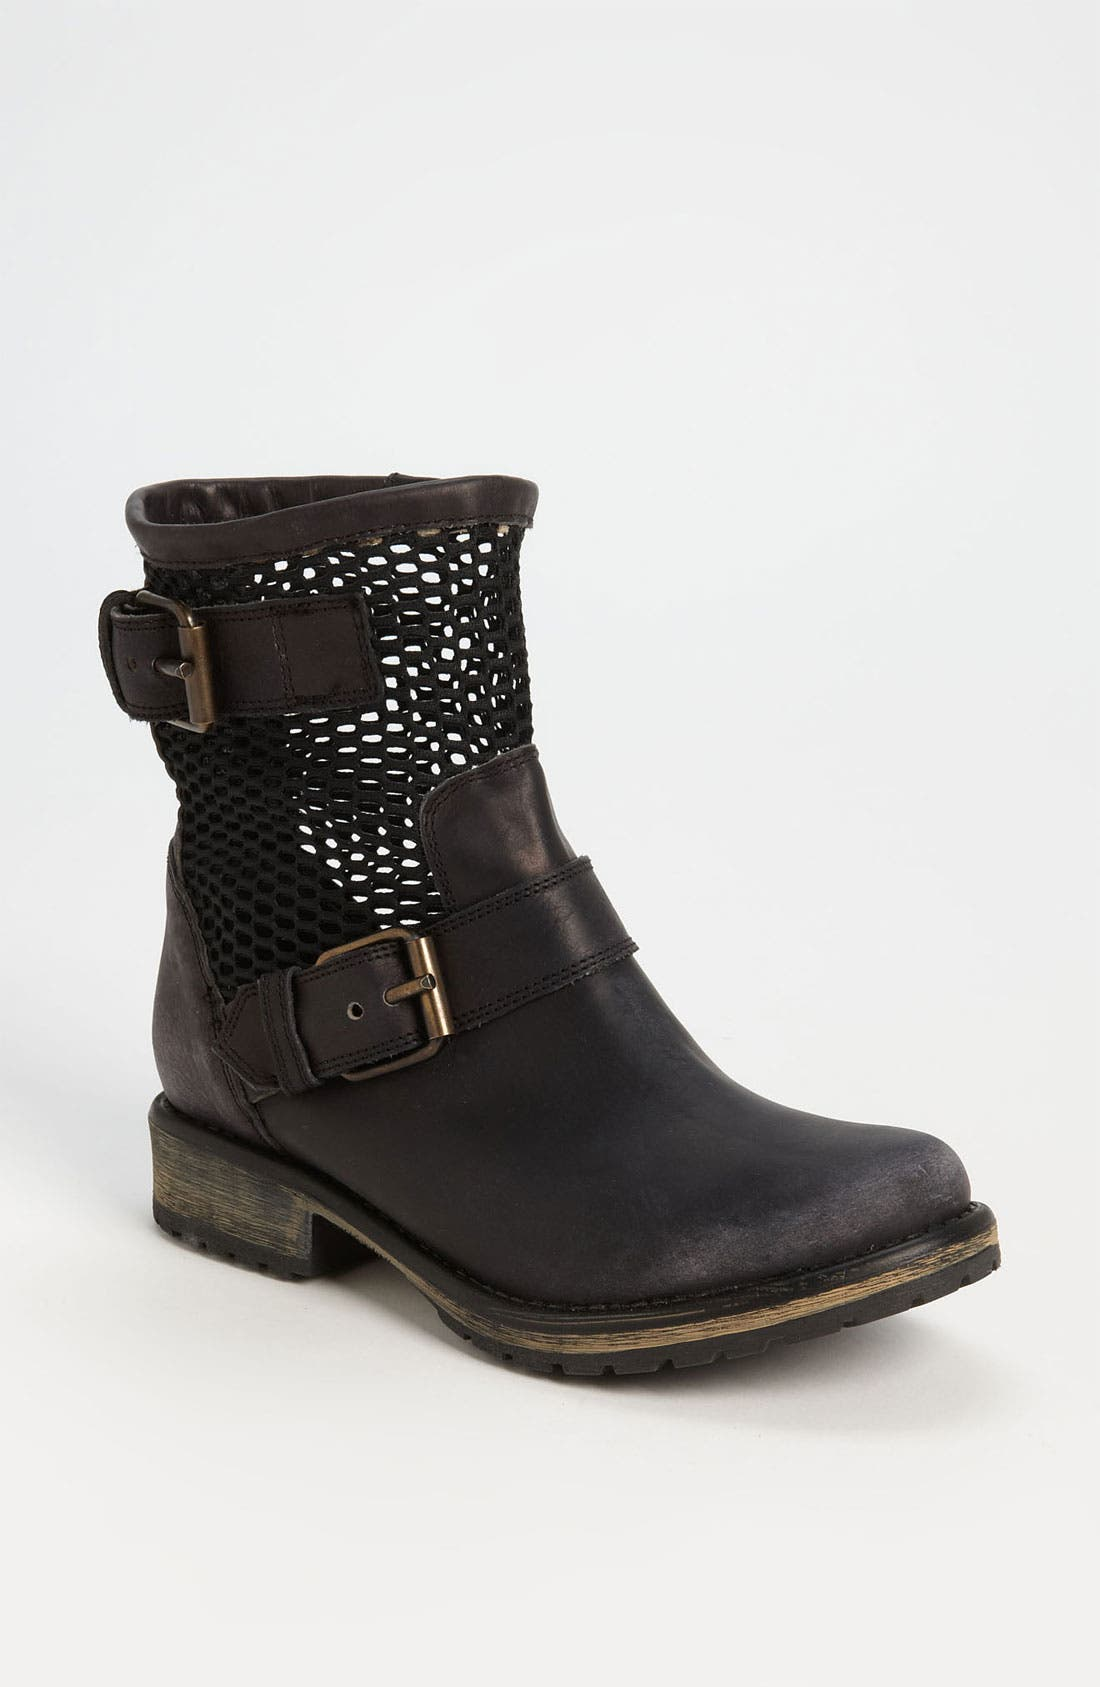 Alternate Image 1 Selected - Steve Madden 'Flank-M' Boot